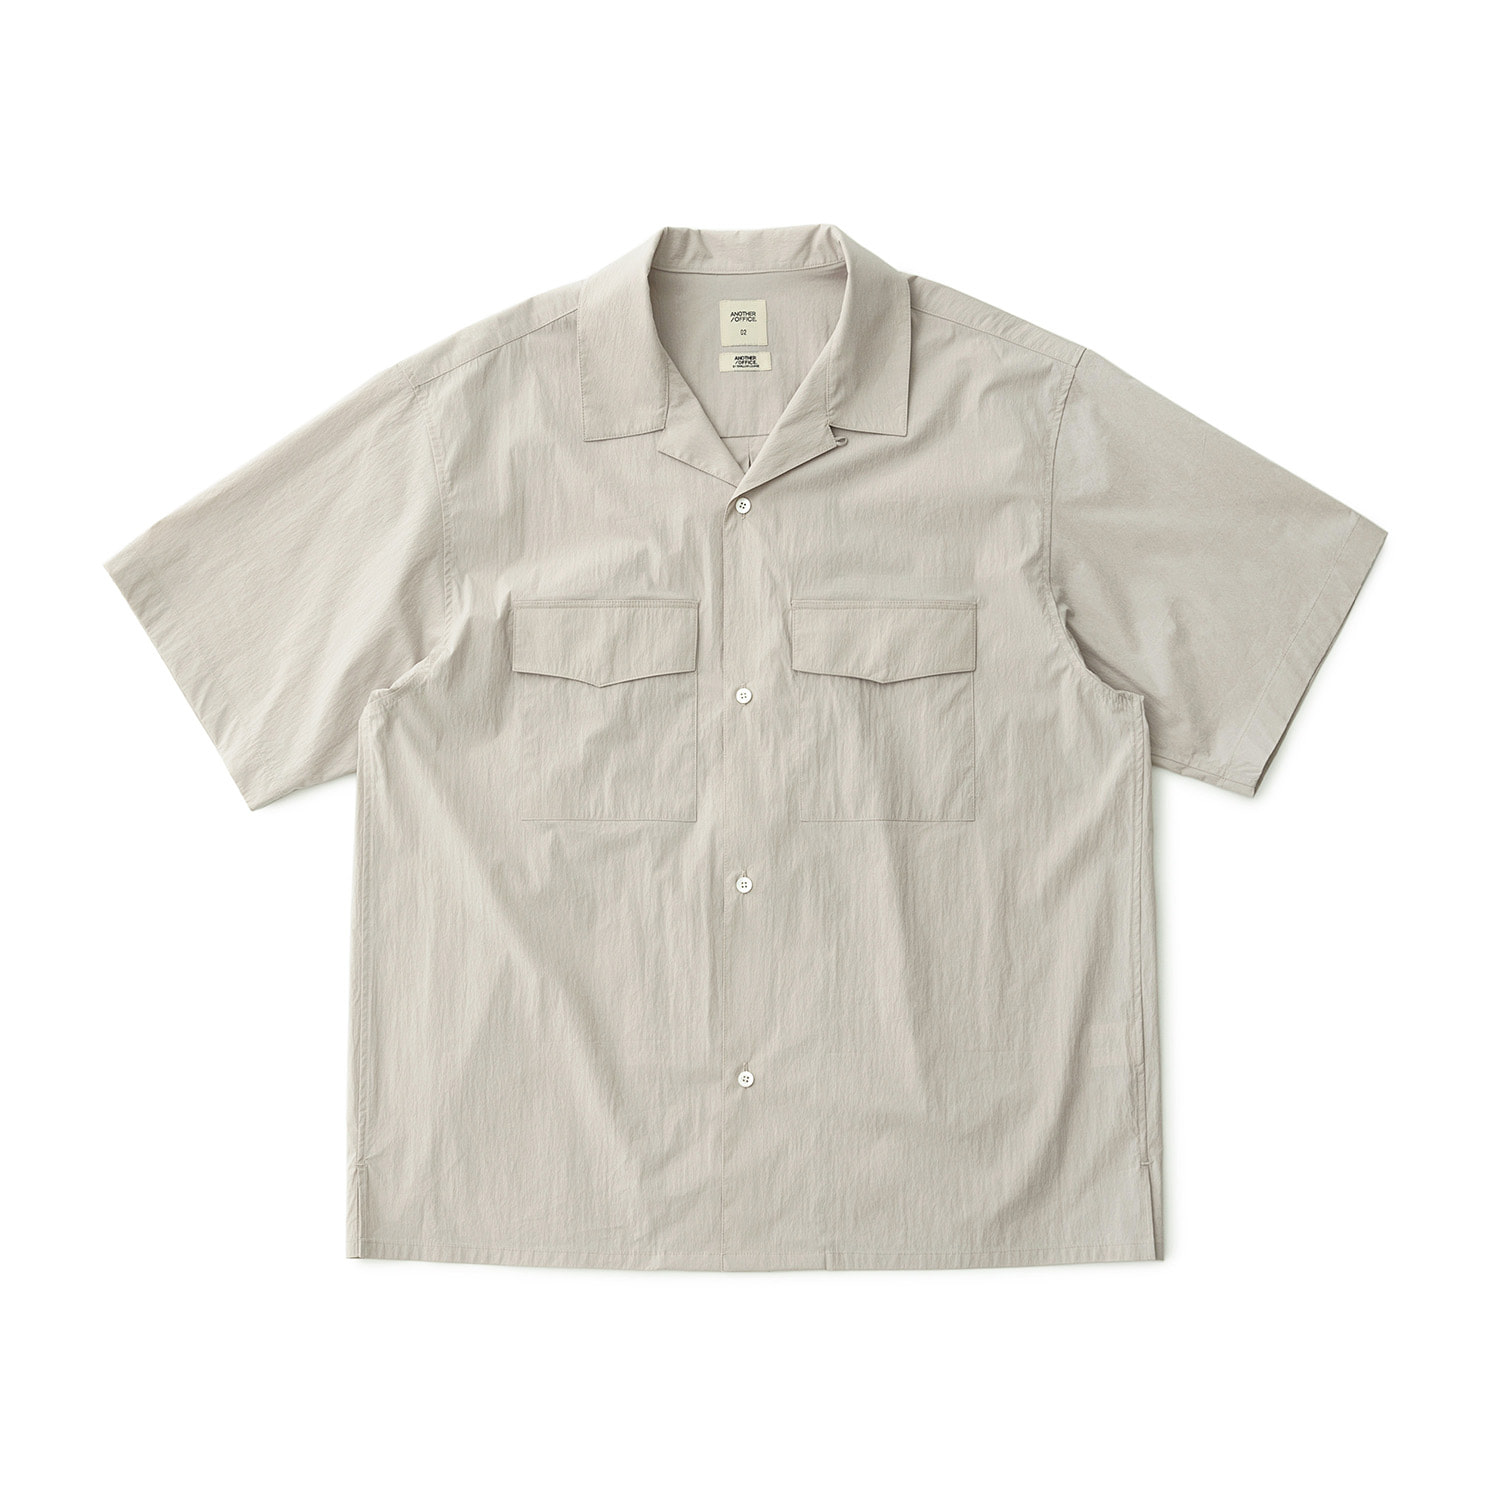 Voyager Open Collar Shirt (Oatmeal)